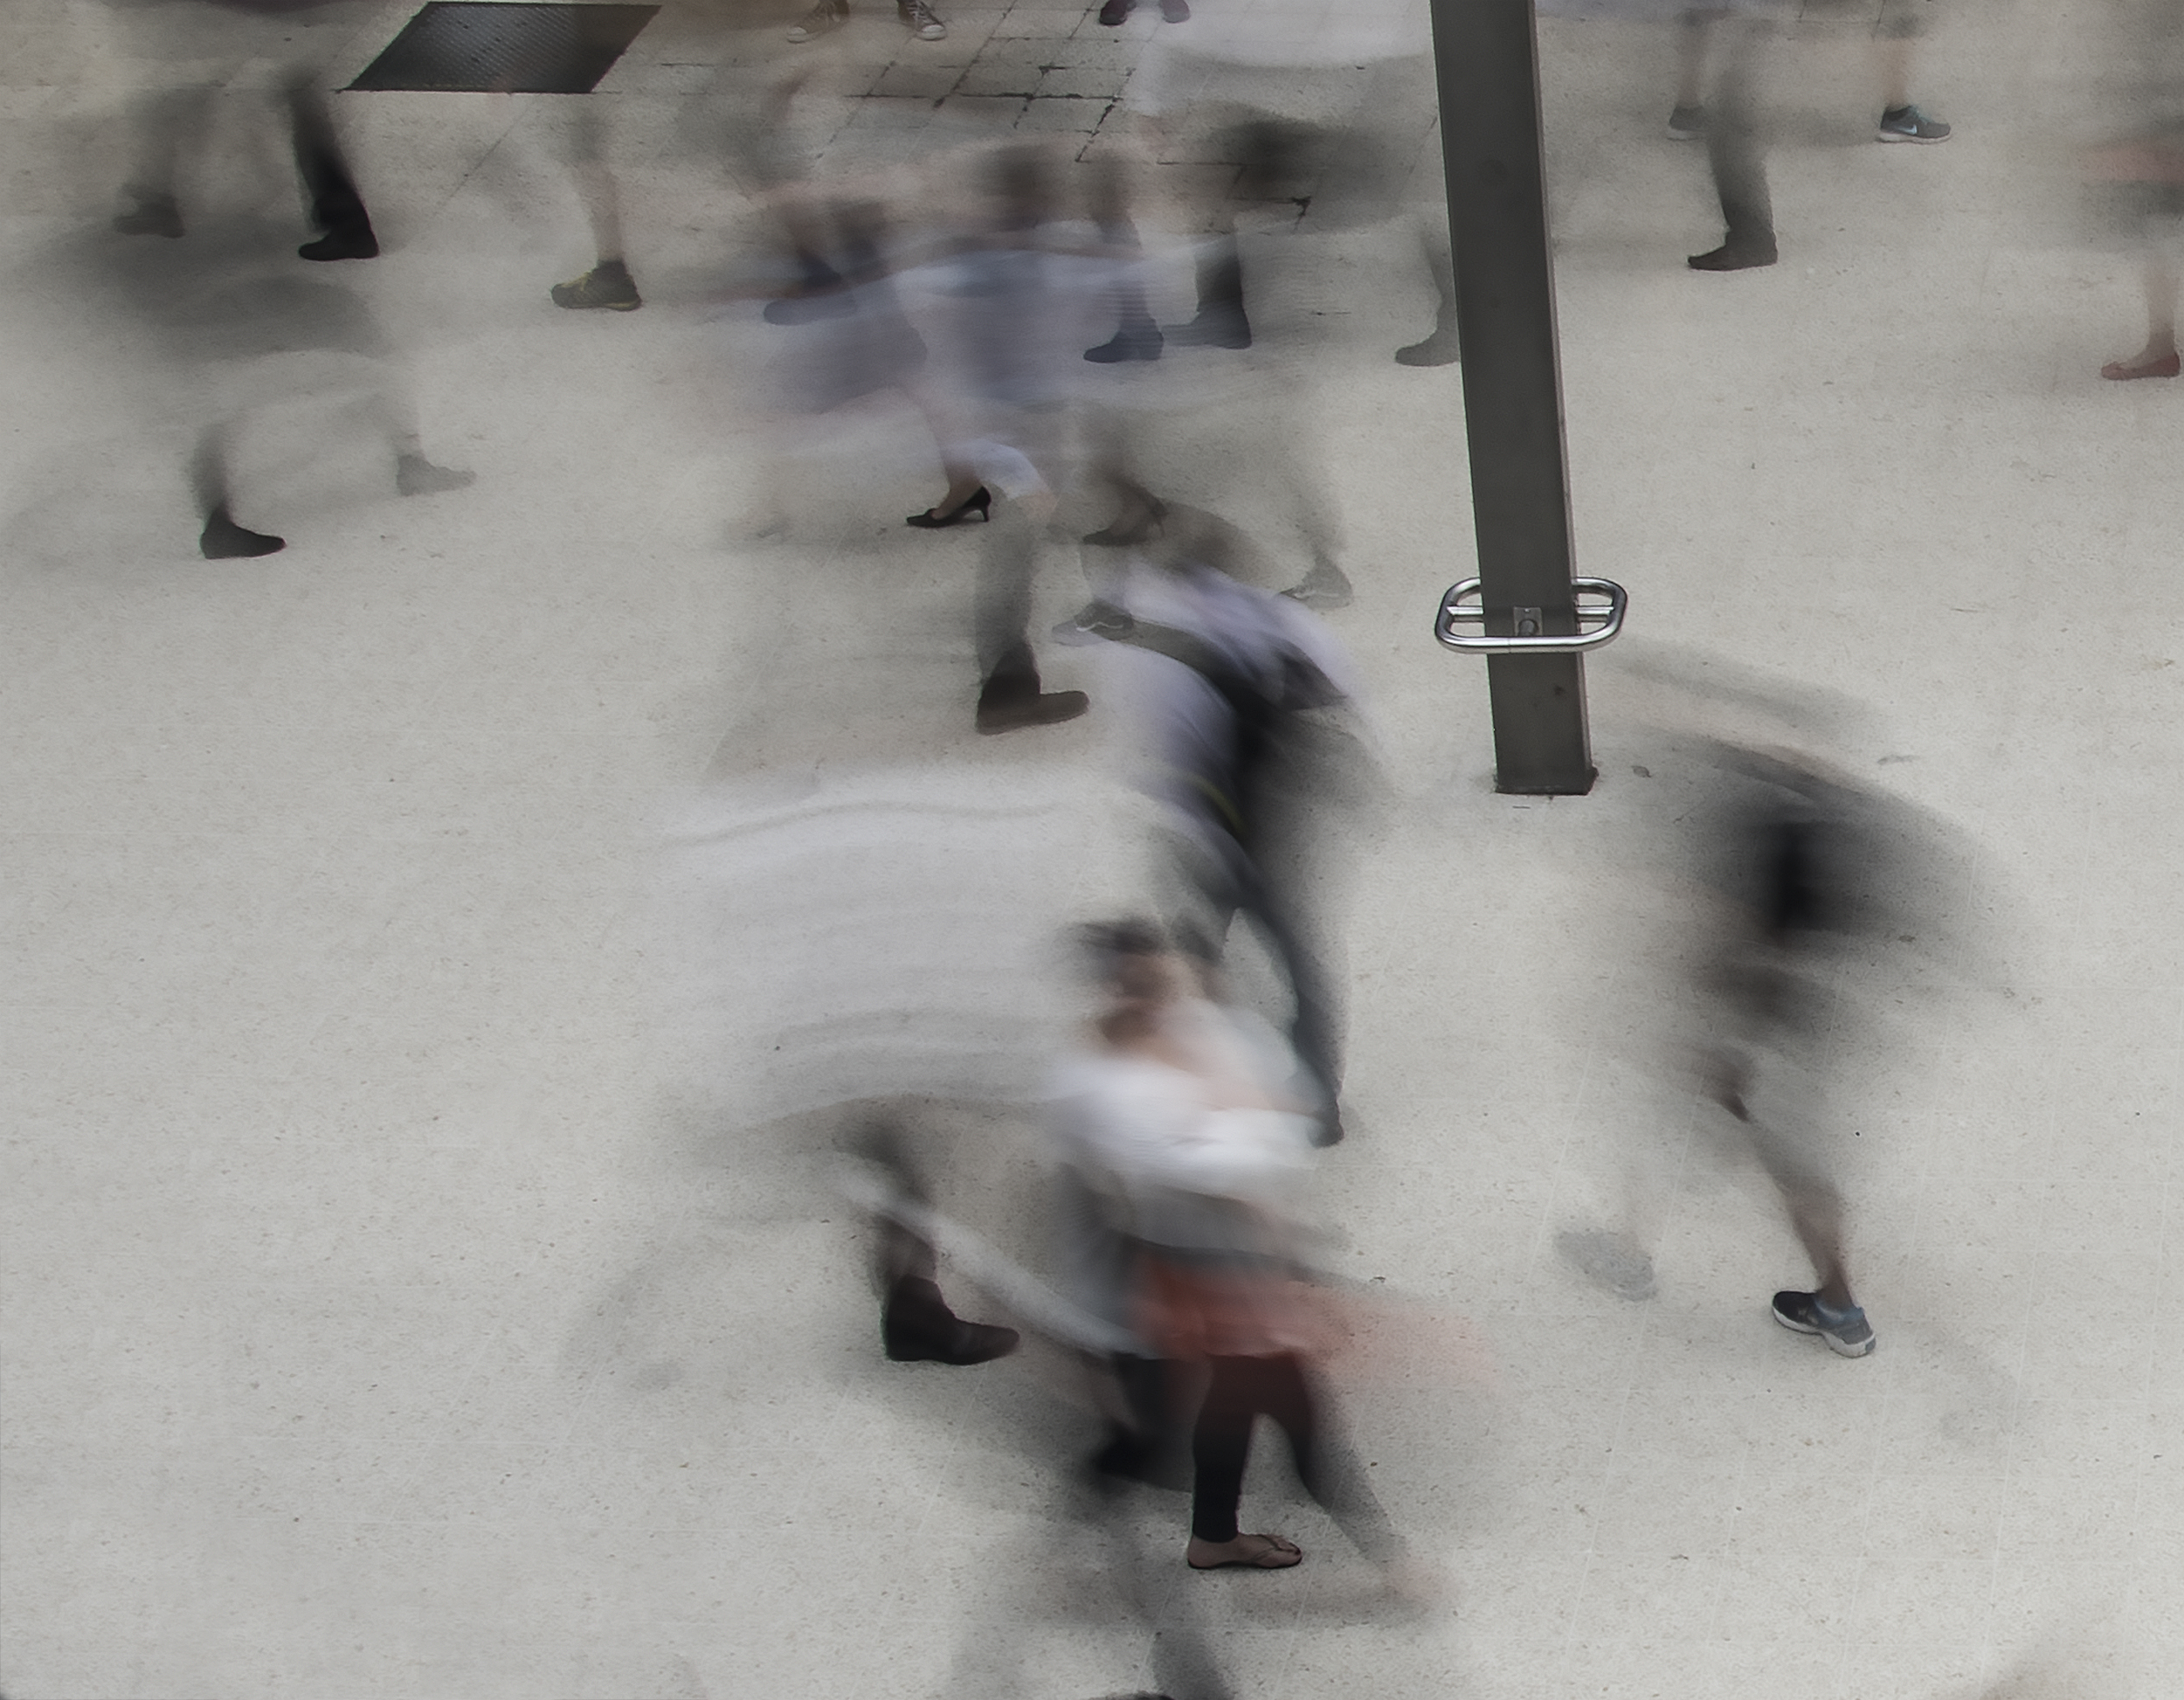 'Ballet', Waterloo 15 secs.